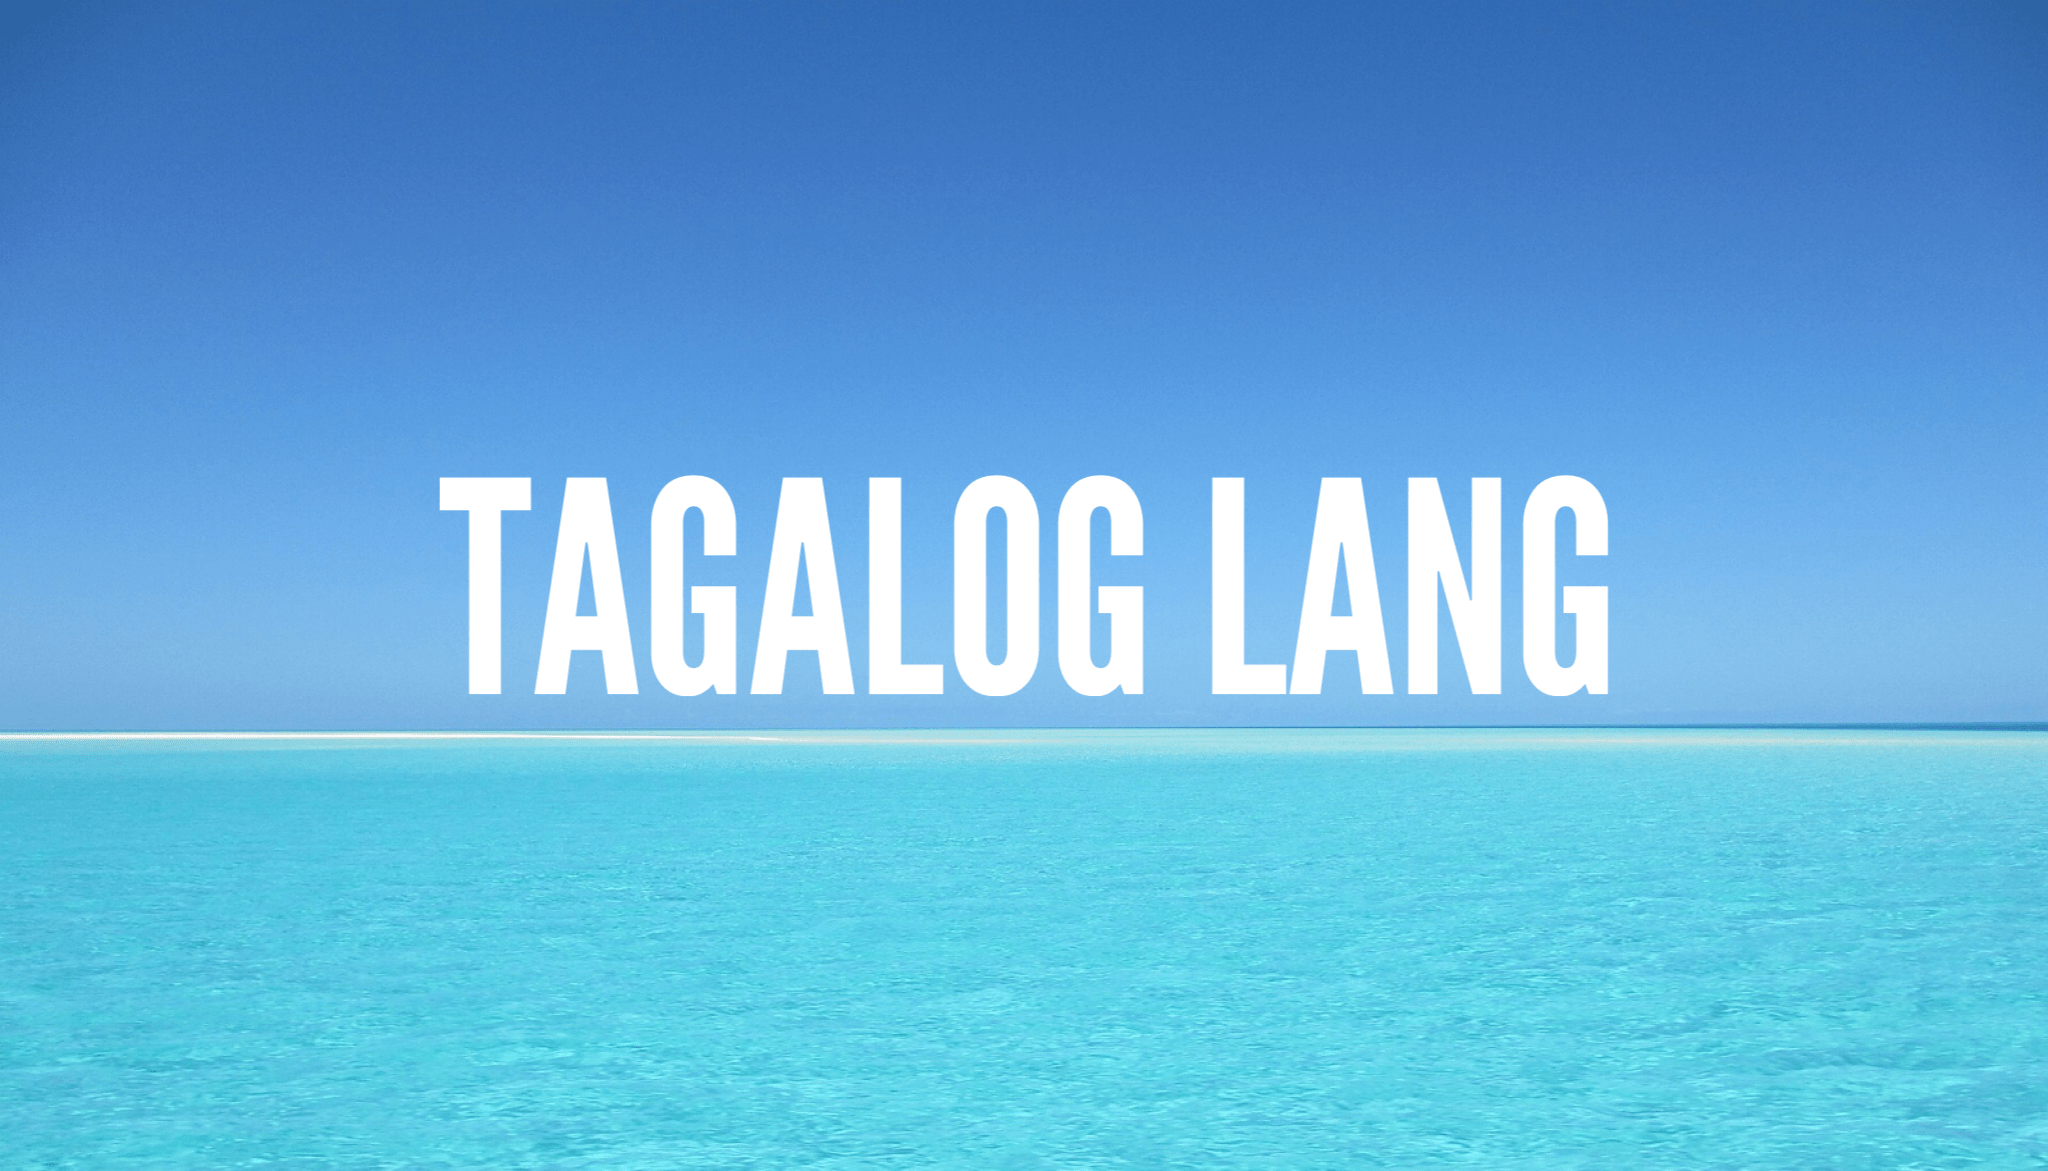 Arte Meaning In Tagalog Ilocano Or Ilokano Language Of The Philippines